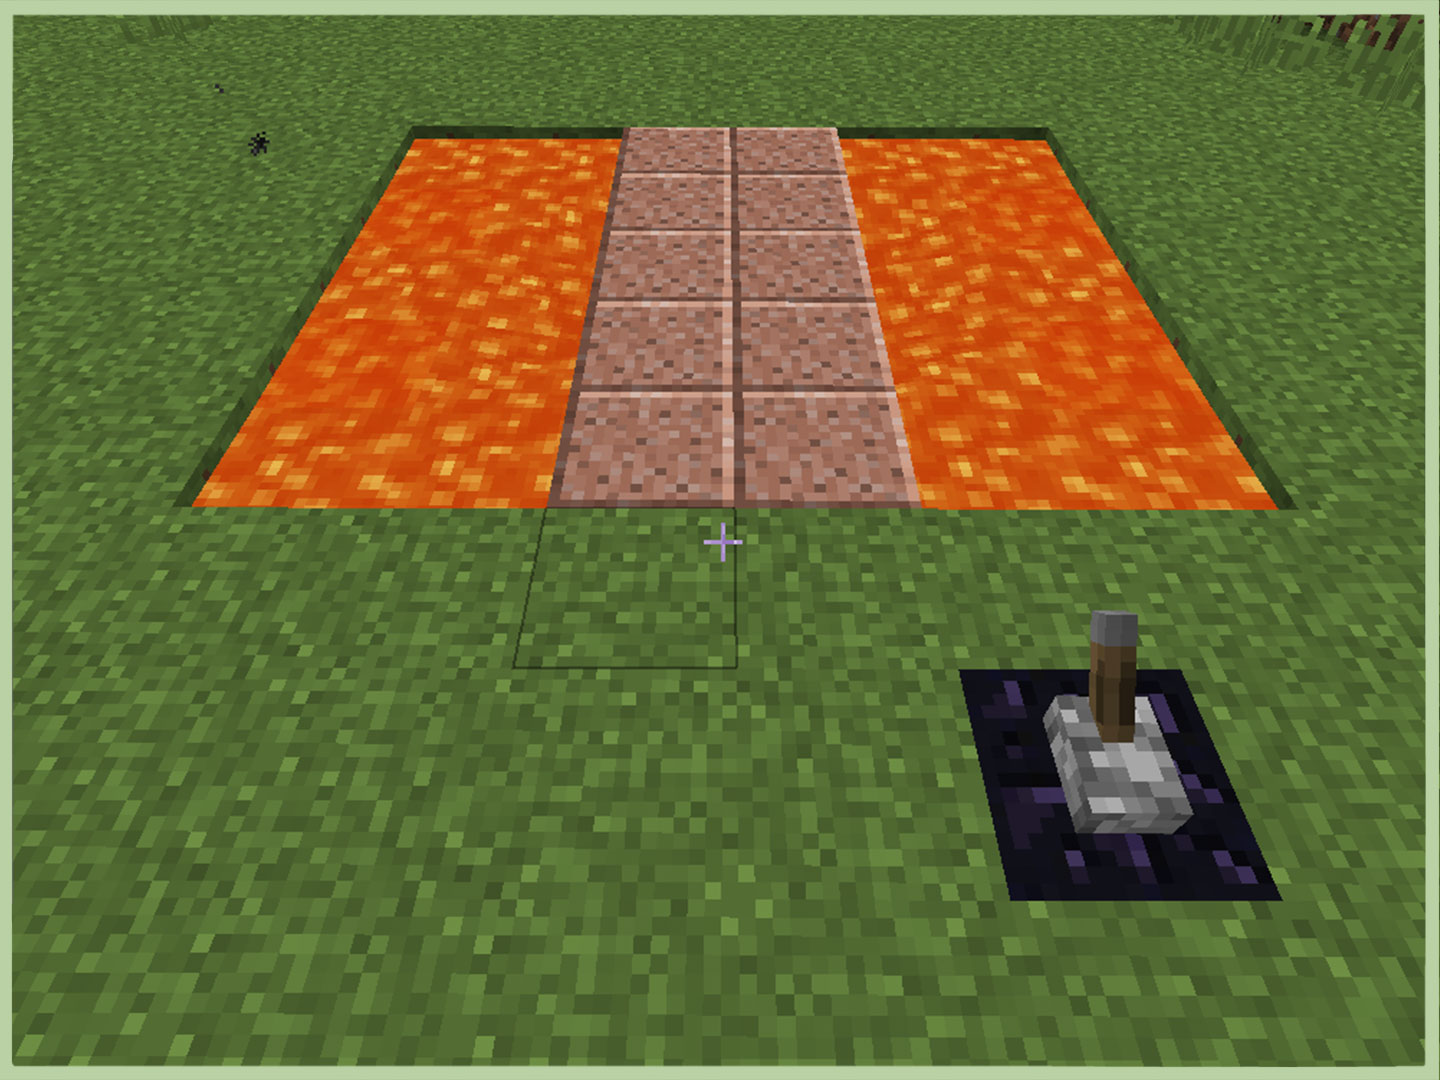 minecraft castle tutorial step by step pictures